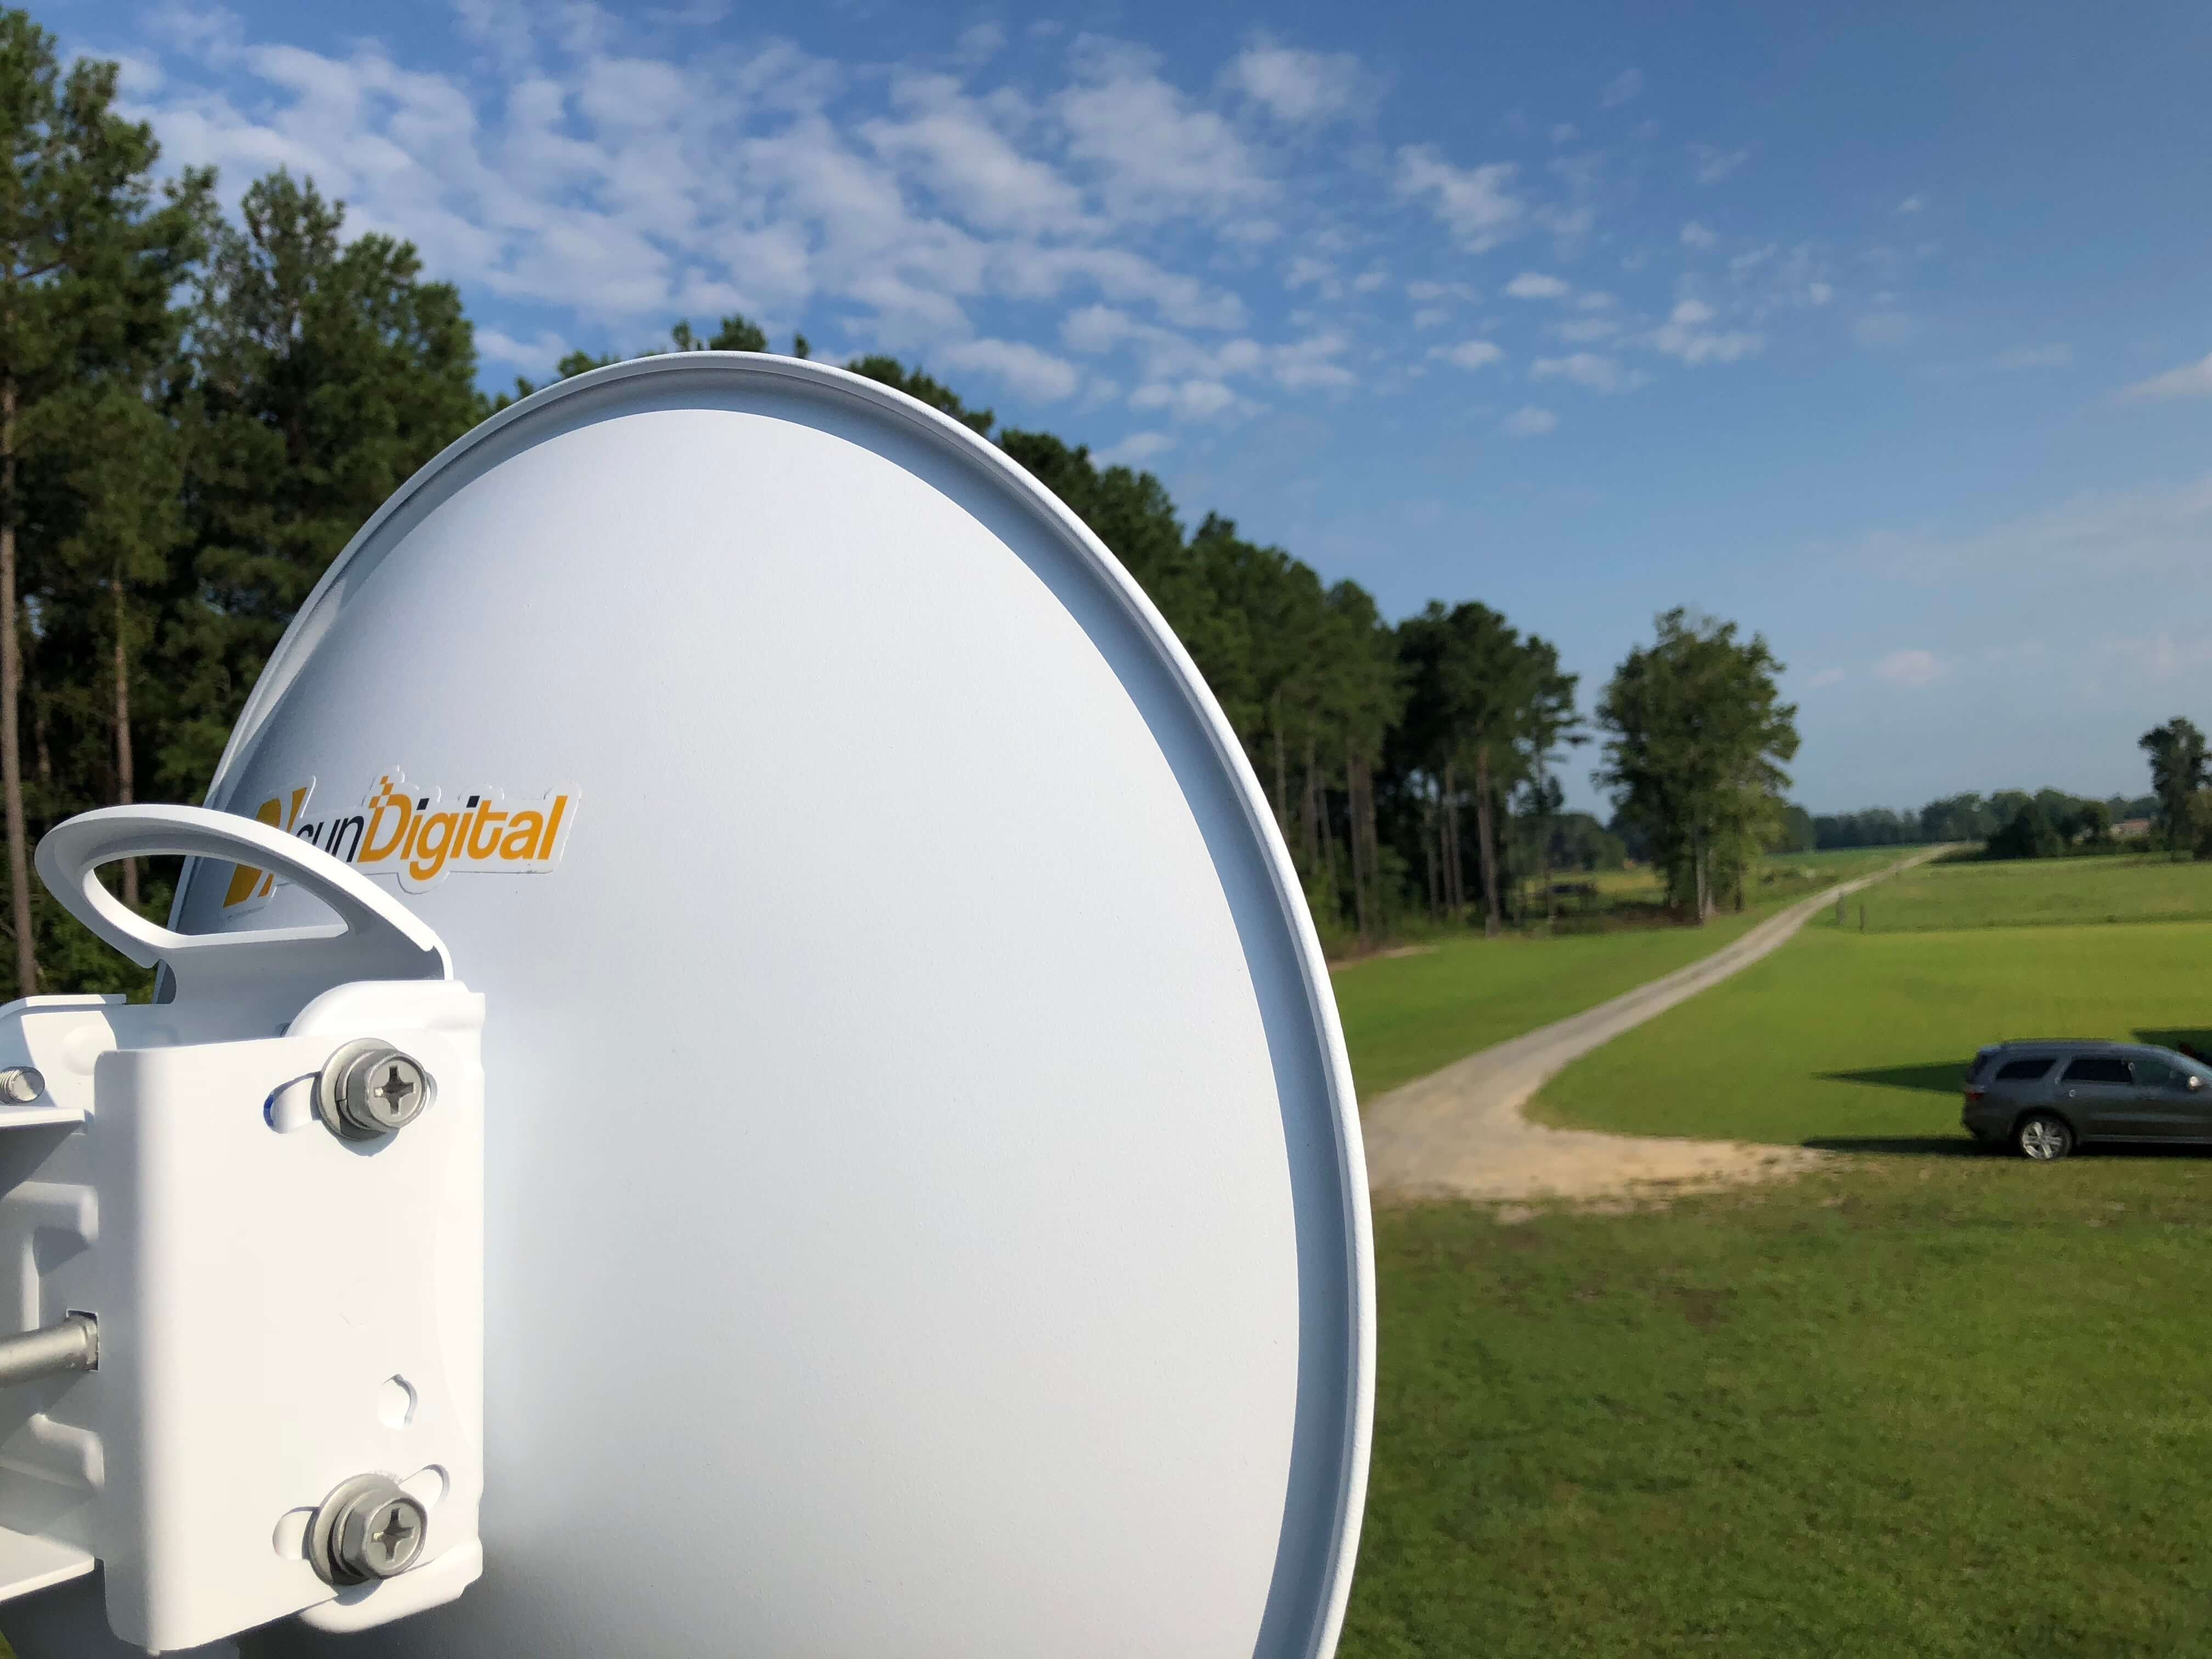 airMax and UniFi Local Point to Point | sunDigital